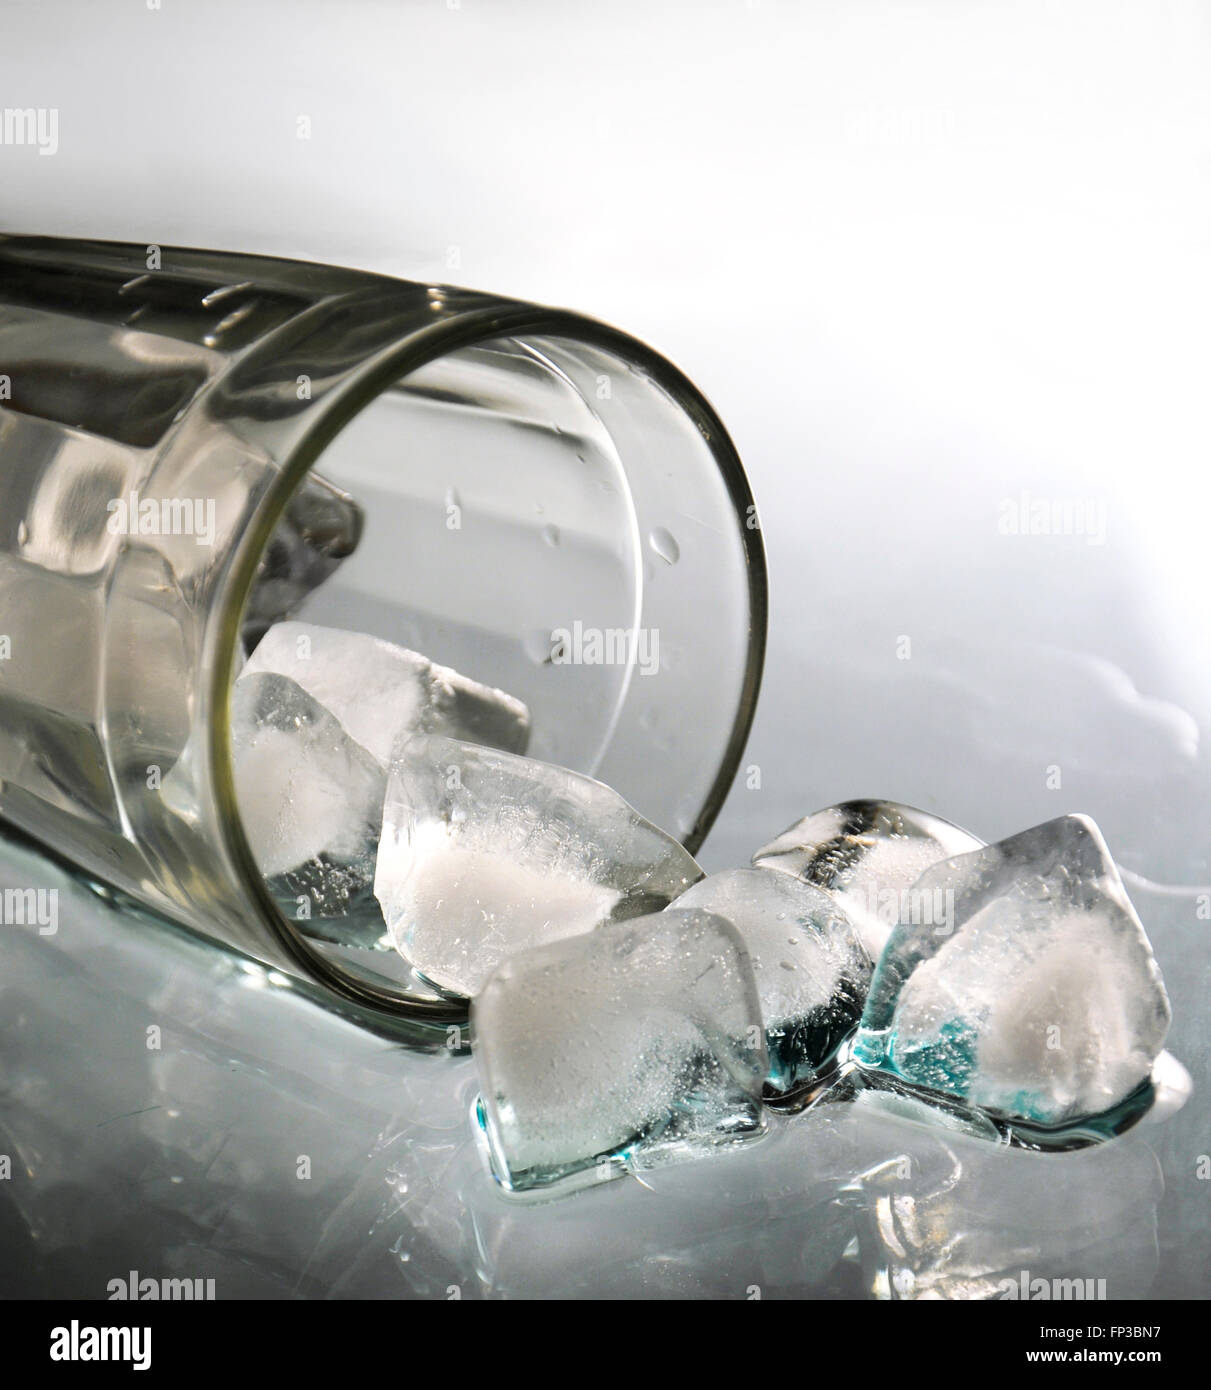 Glass with ice cubes - Stock Image